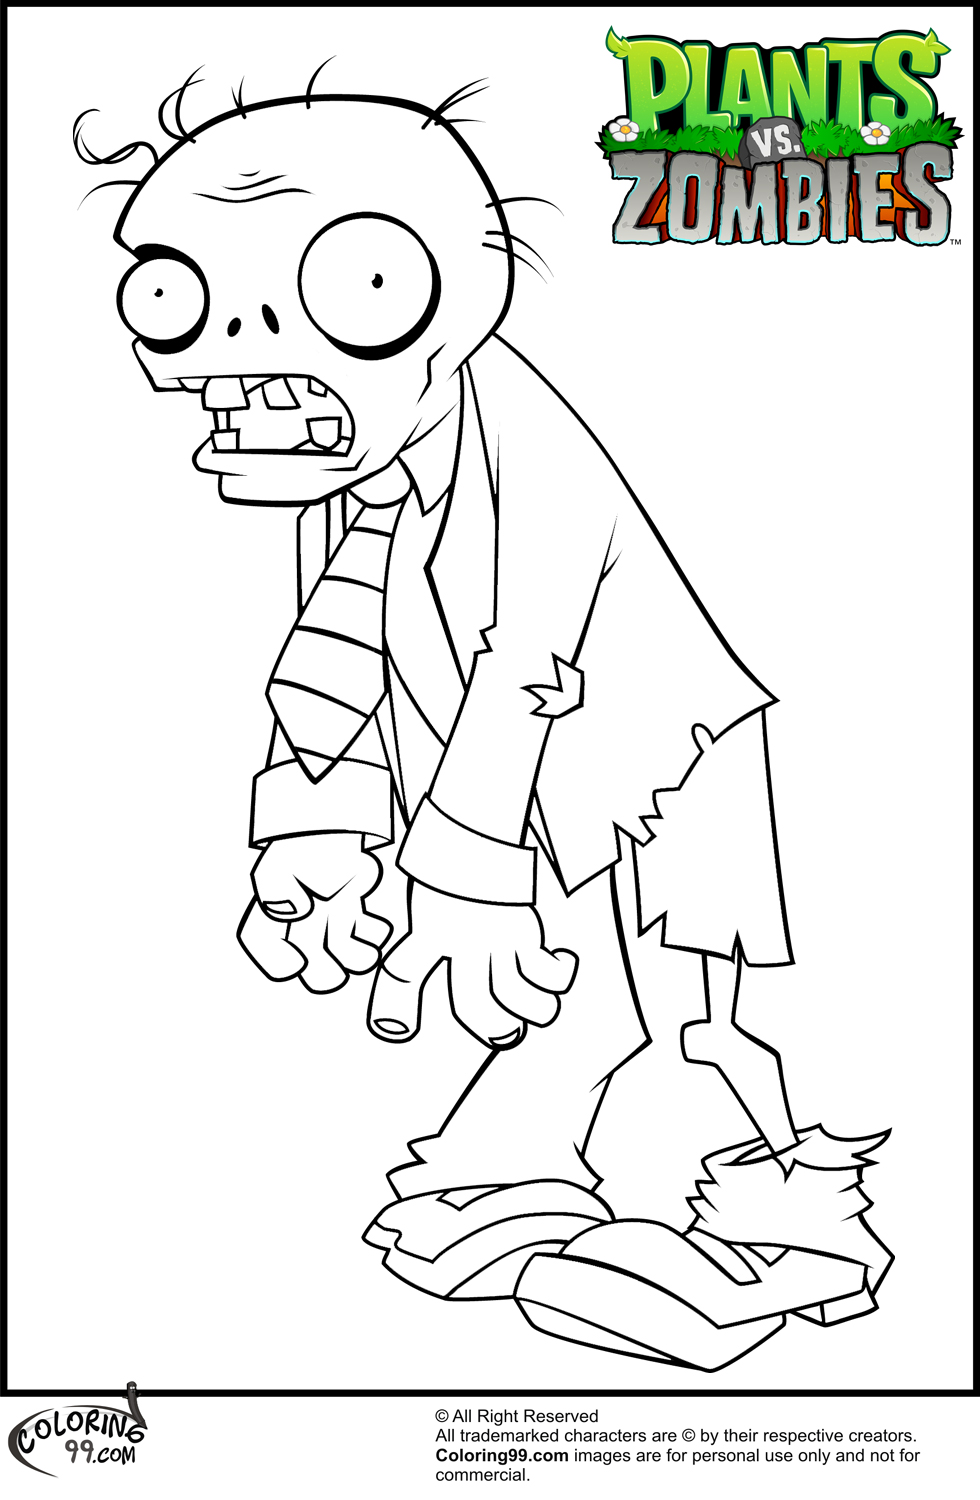 Plants VS Zombies Coloring Pages | Team colors